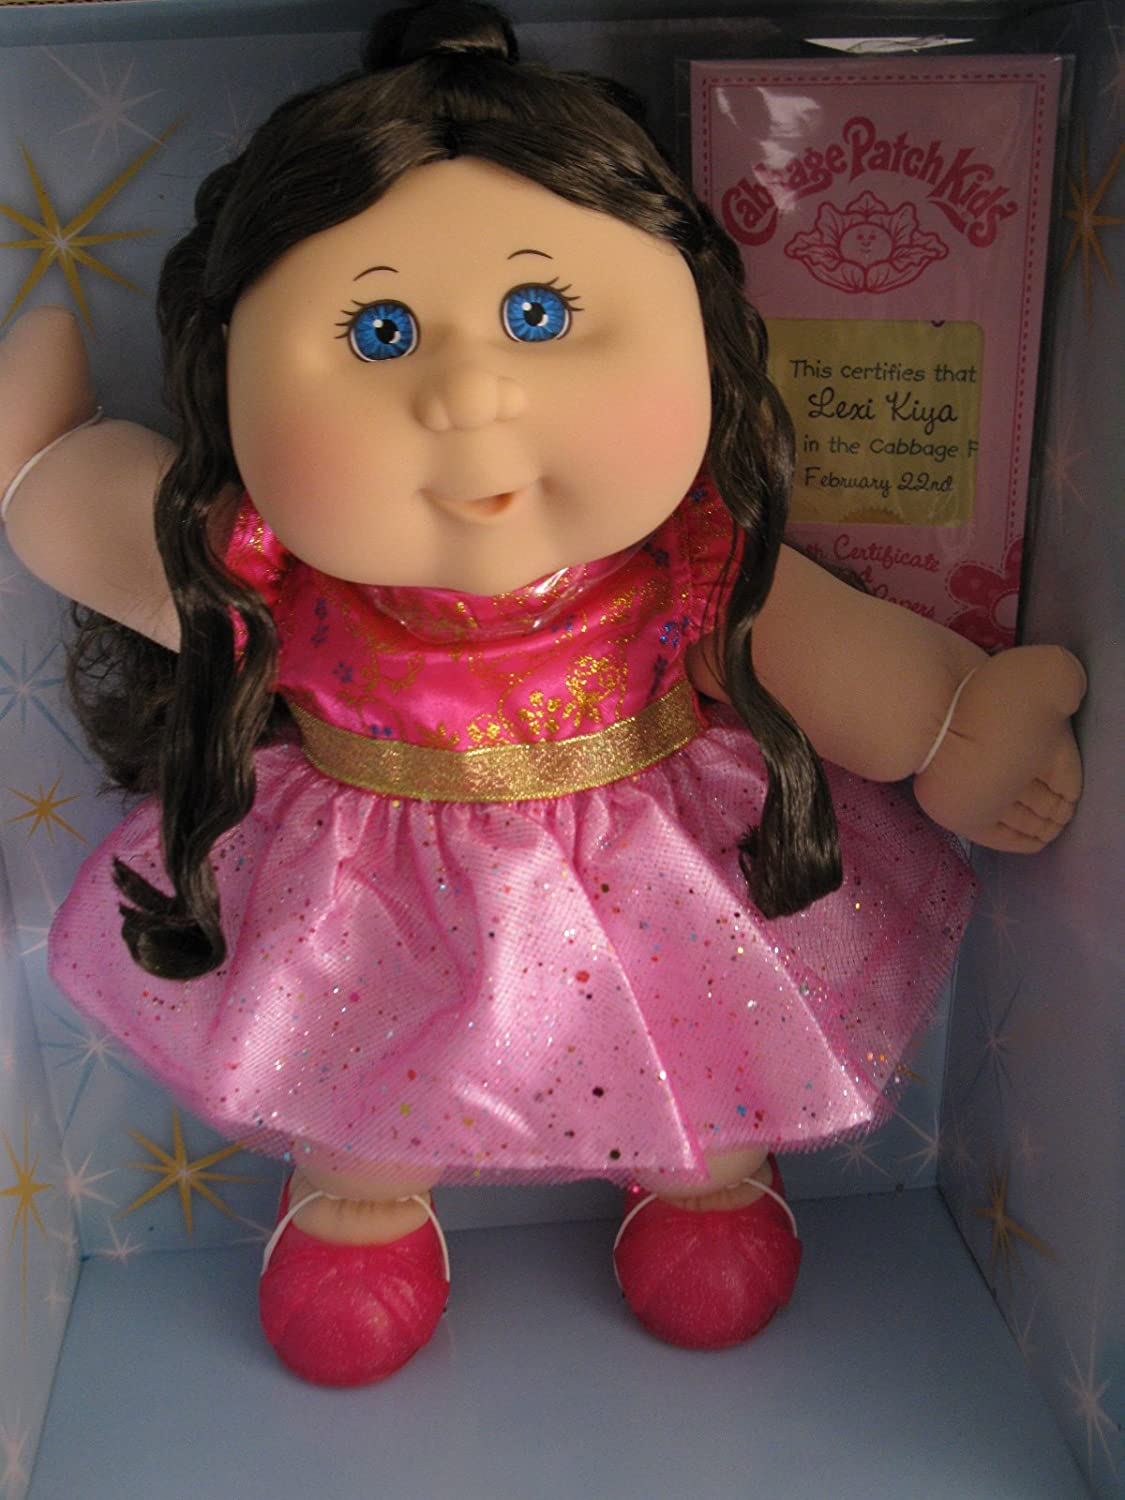 Buy Cabbage Patch Kids - Sparkle Collection CPK - Caucasian Girl